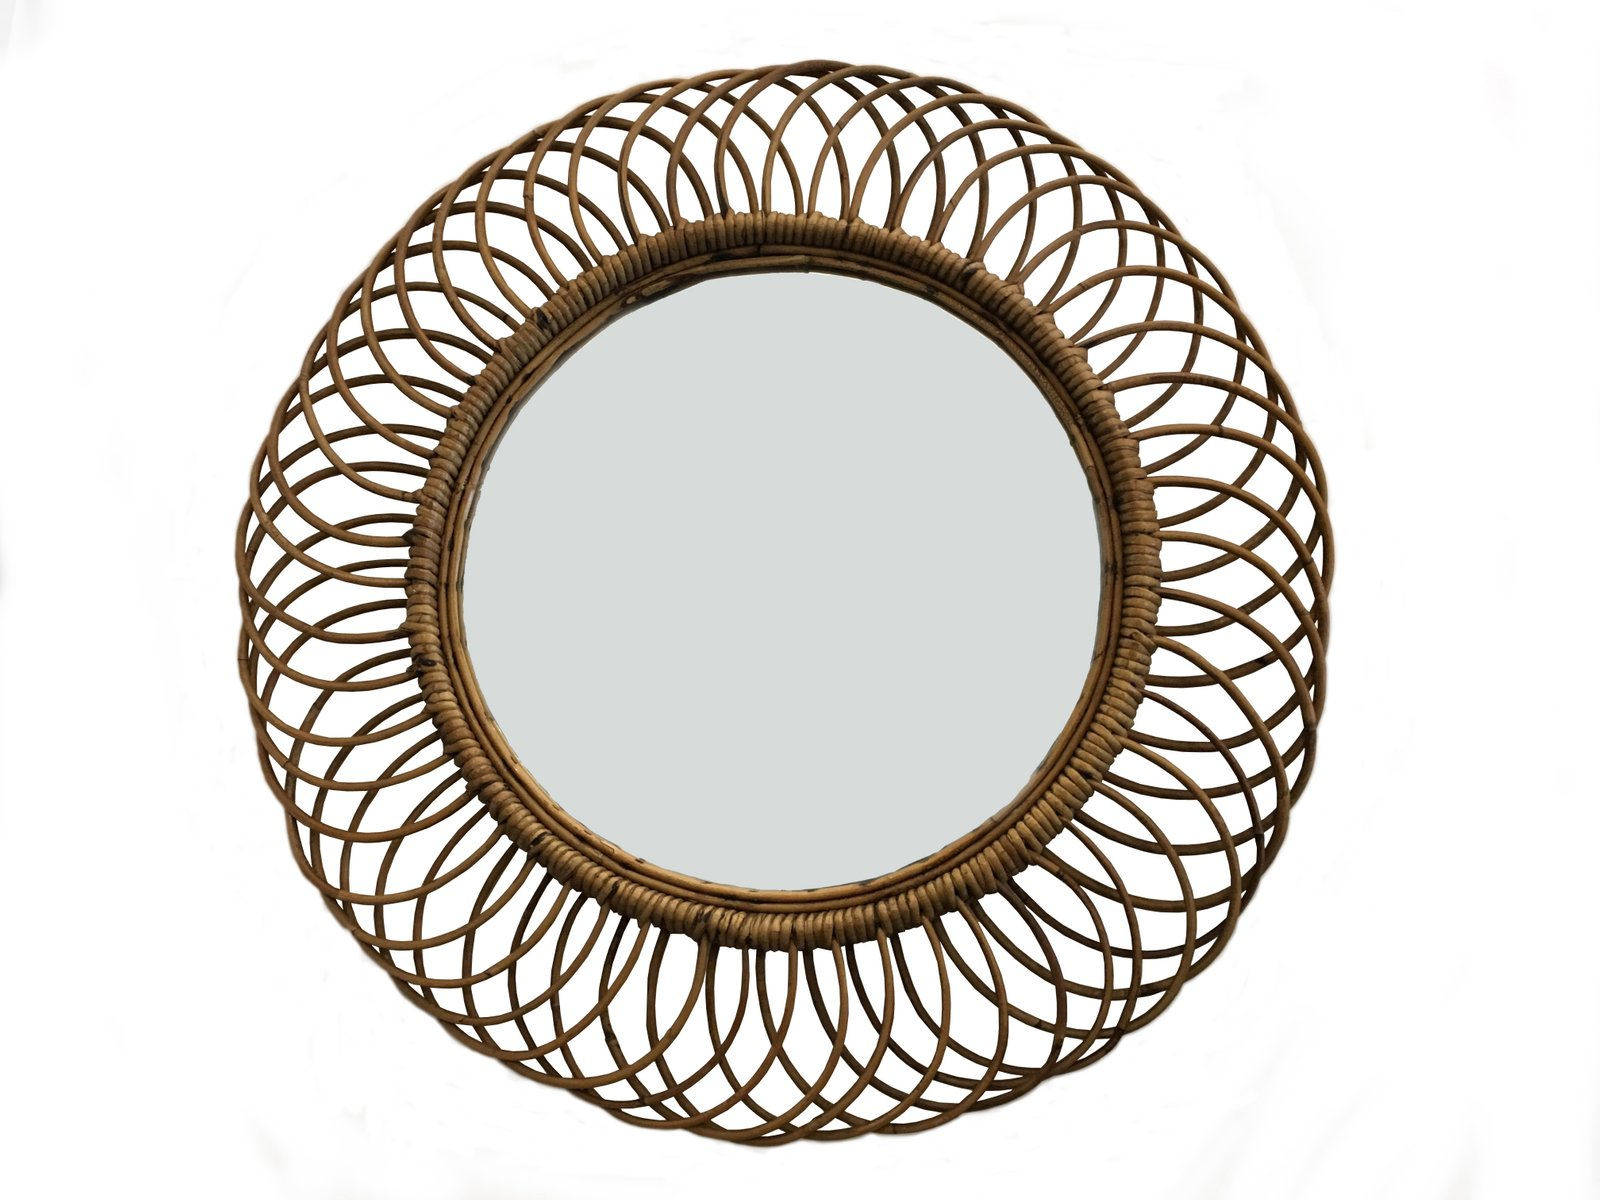 Rattan Wall Decor Round : Vintage wicker round wall mirror s for sale at pamono